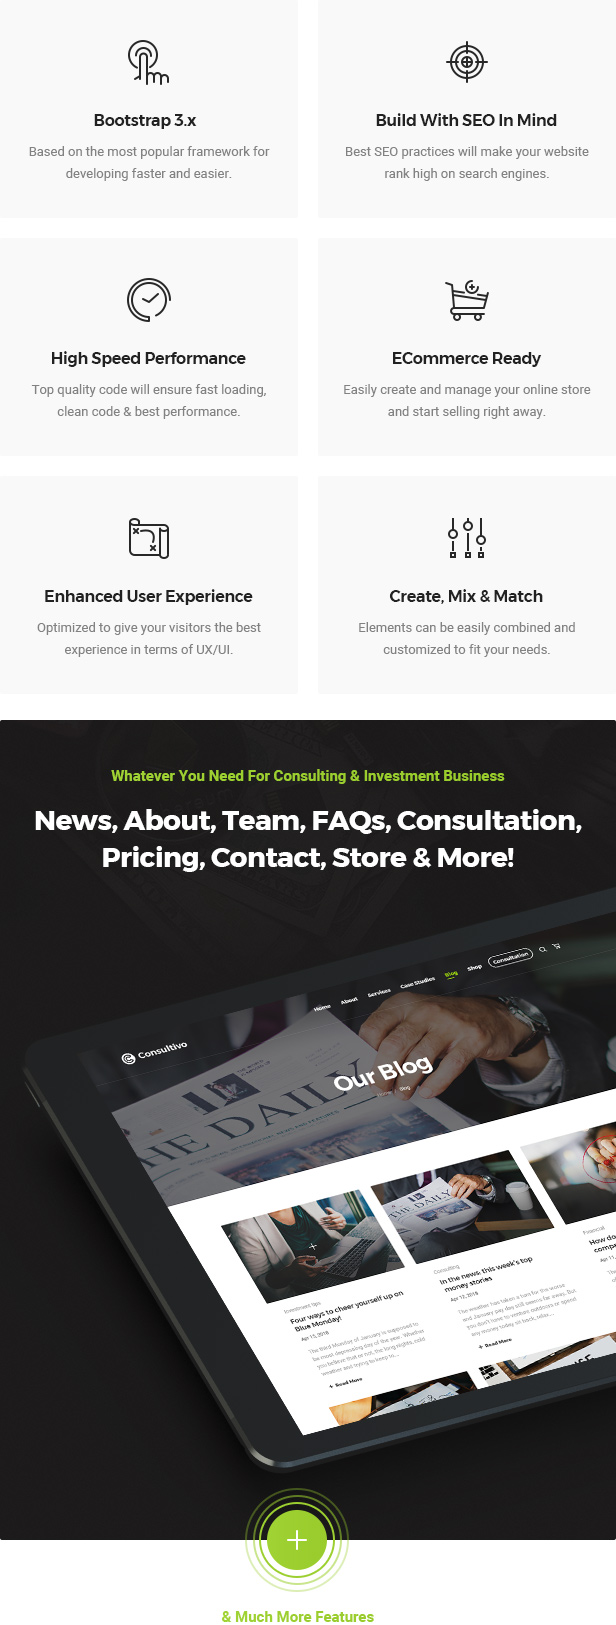 Consultivo - Business Consulting and Investments HTML5 Template - 4